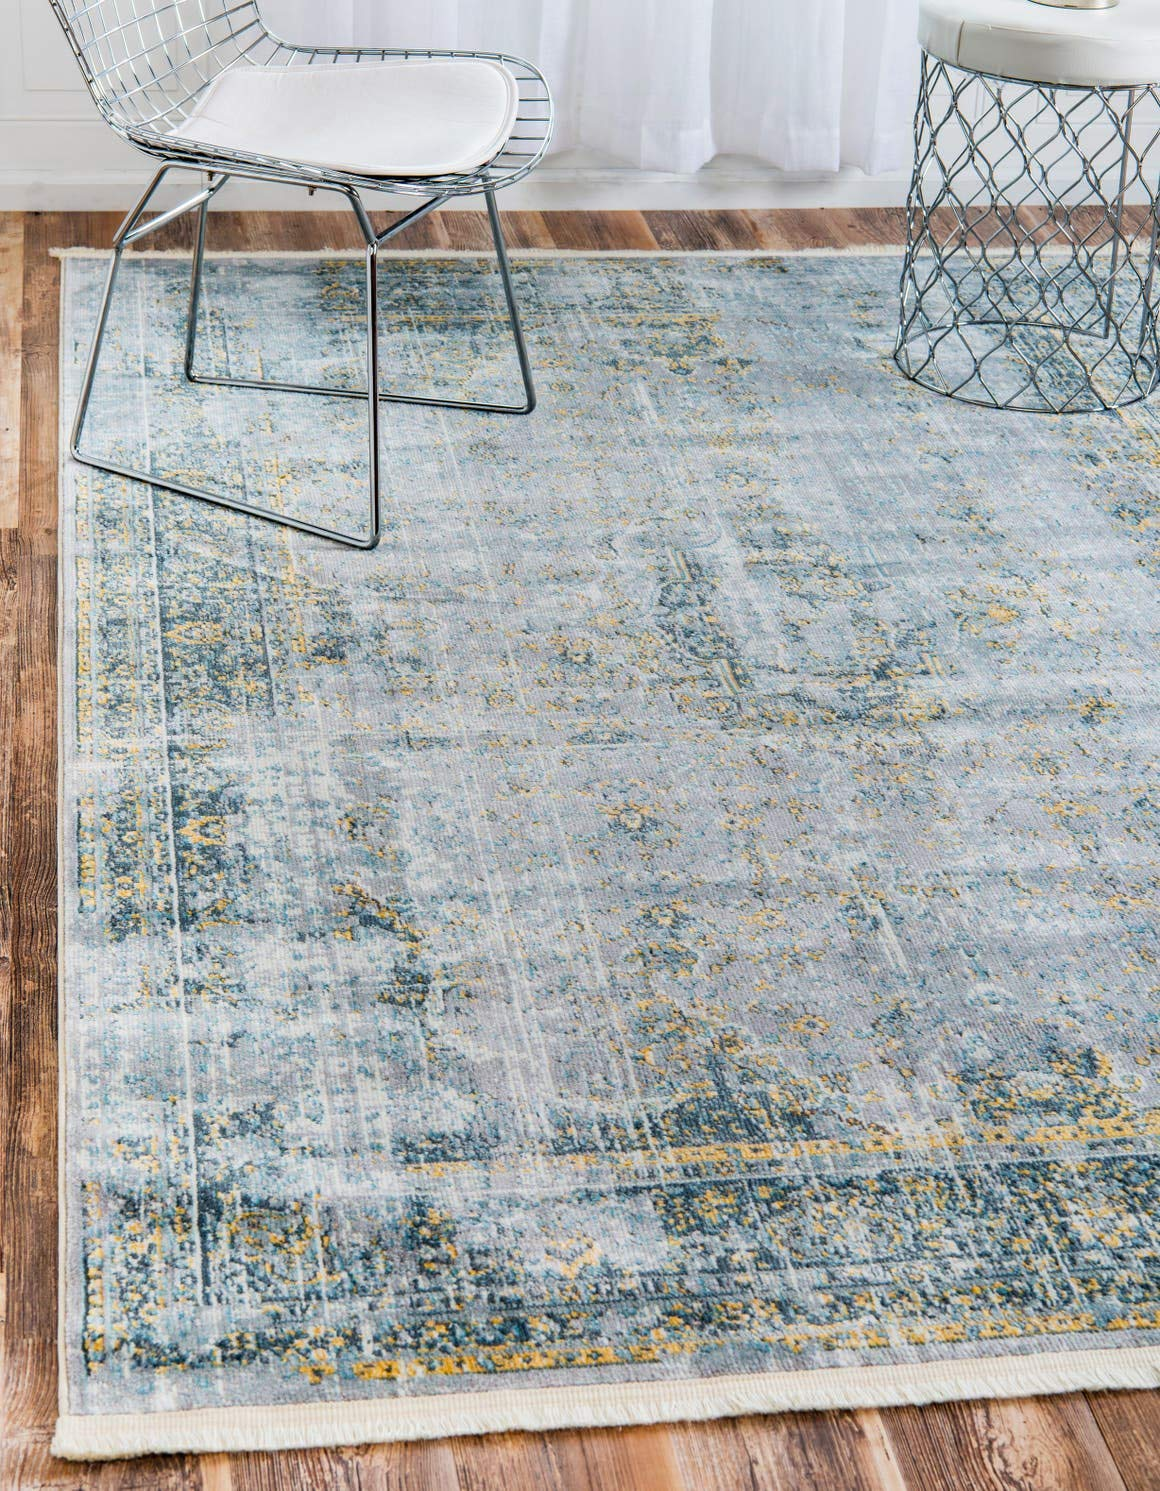 Unique Loom Baracoa Collection Bright Tones Vintage Traditional Gray Area Rug 5 5 x 8 0